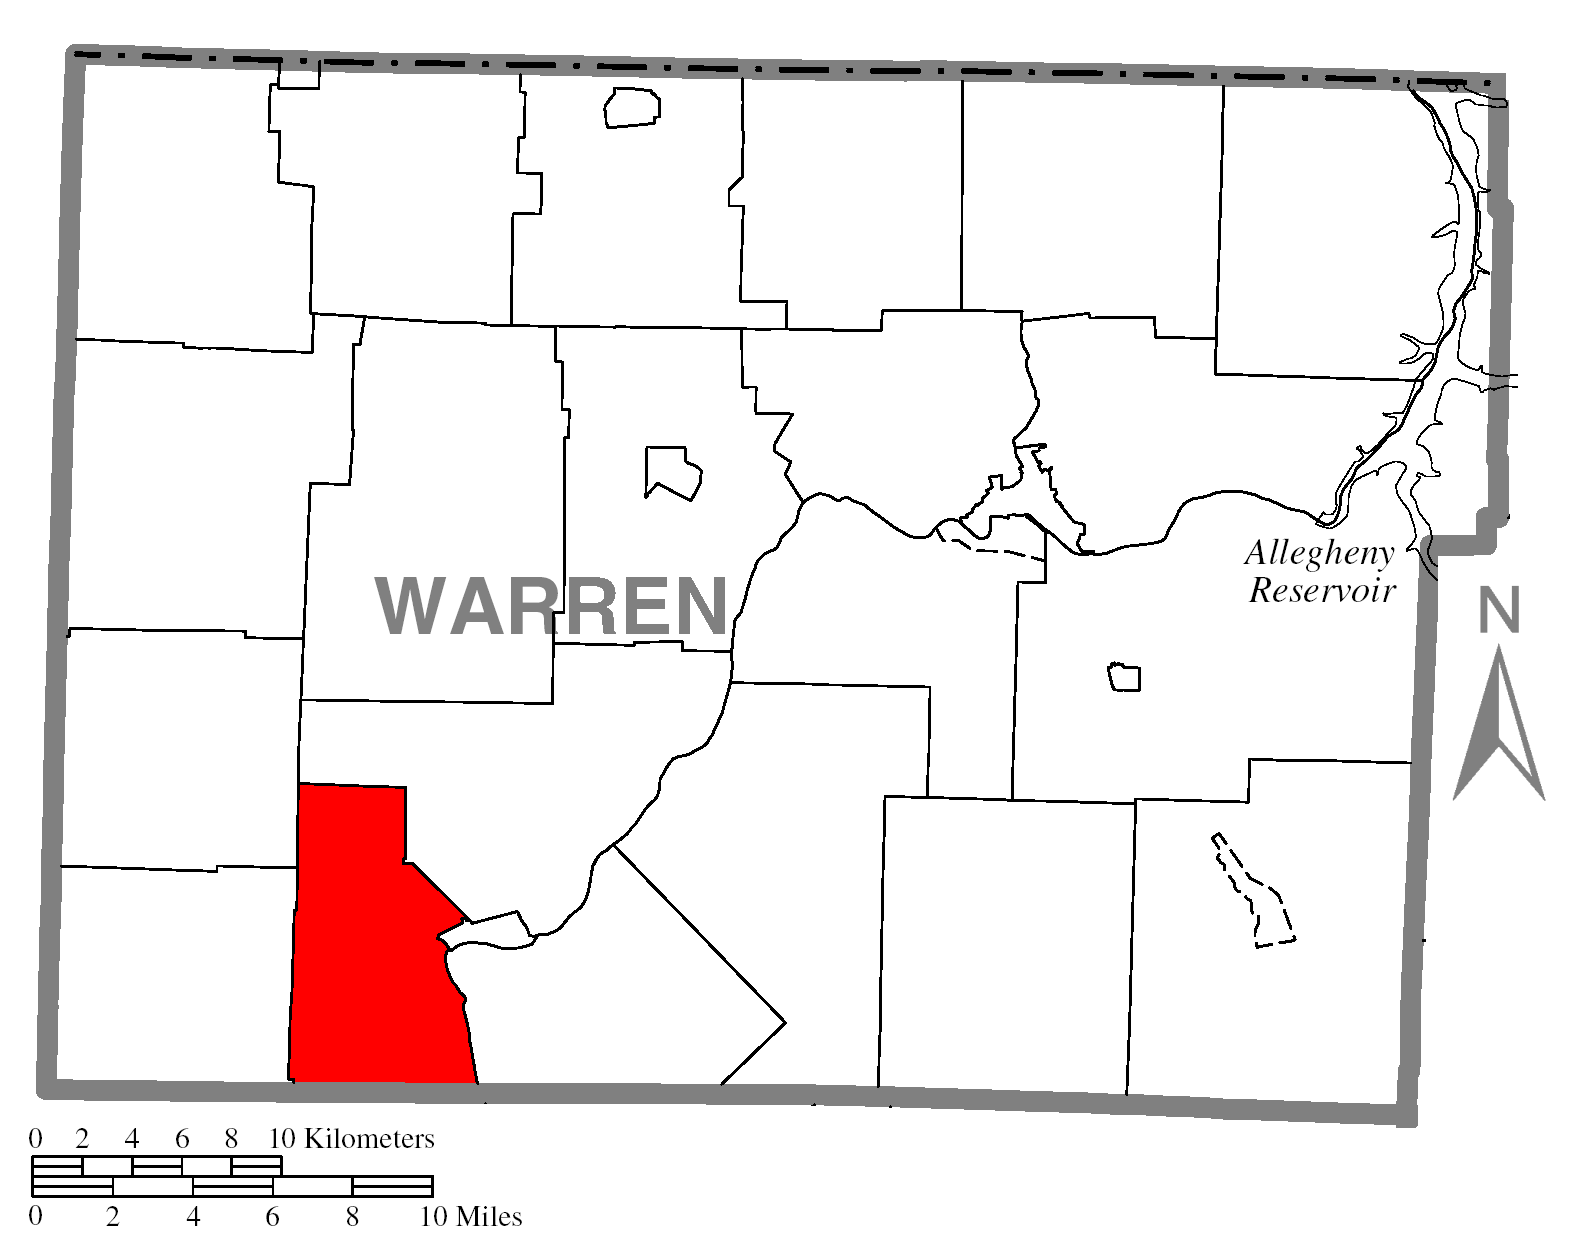 File:Map of Triumph Township, Warren County, Pennsylvaniatriumph township